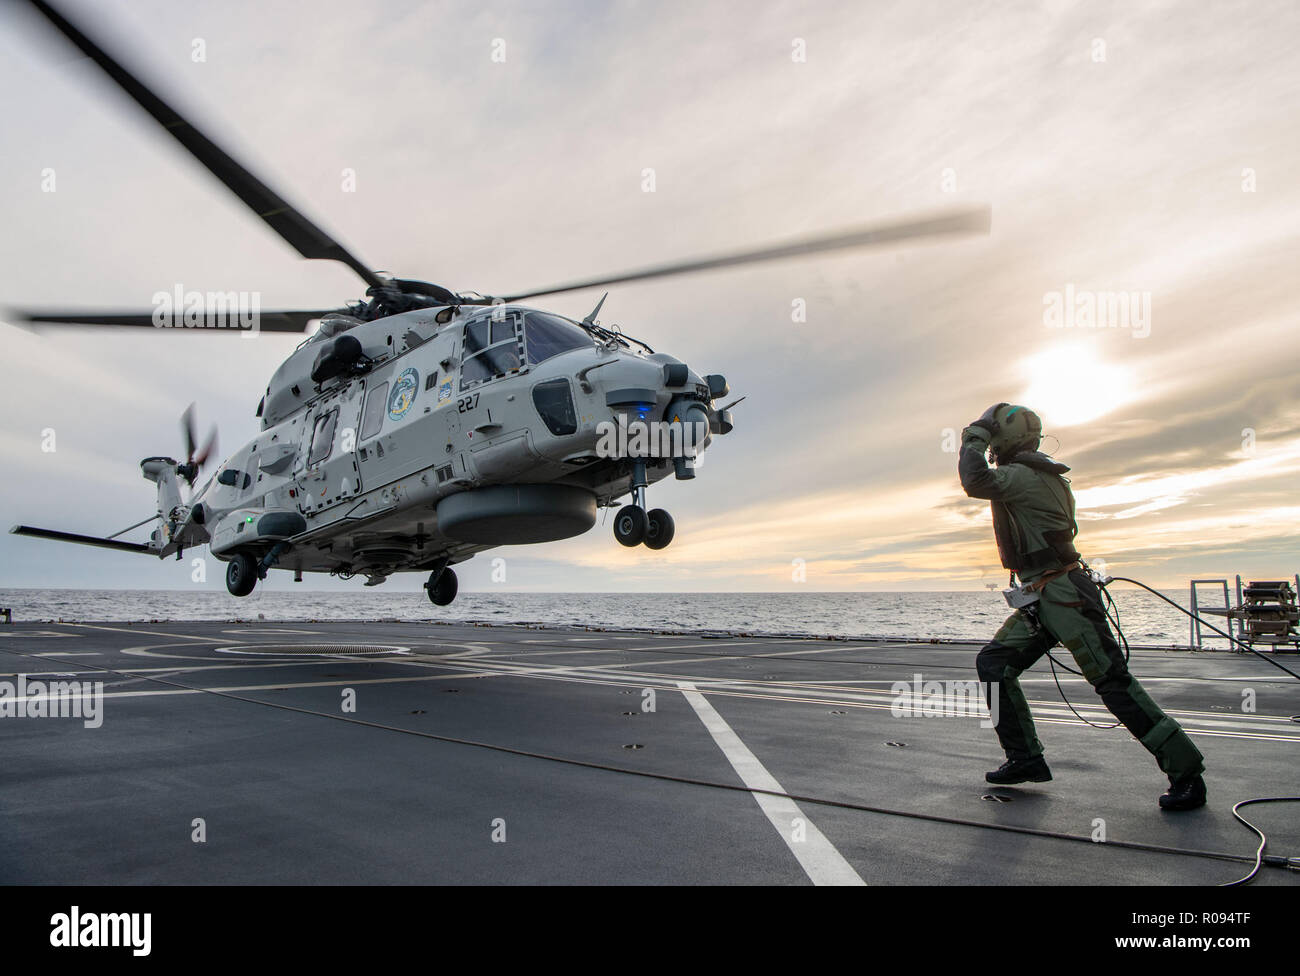 A Royal Netherlands Navy NH-90 takes off from HNLMS De Ruyter duirng NATO exercise Trident Juncture on October 31, 2018.  Trident Juncture 18 is designed to ensure that NATO forces are trained, able to operate together and ready to respond to any threat from any direction. Trident Juncture 18 takes place in Norway and the surrounding areas of the North Atlantic and the Baltic Sea, including Iceland and the airspace of Finland and Sweden. With around 50,000 participants from 31 nations, Trident Juncture 2018 is one of NATO's largest exercises in recent years. More than 250 aircraft, 65 ships an Stock Photo